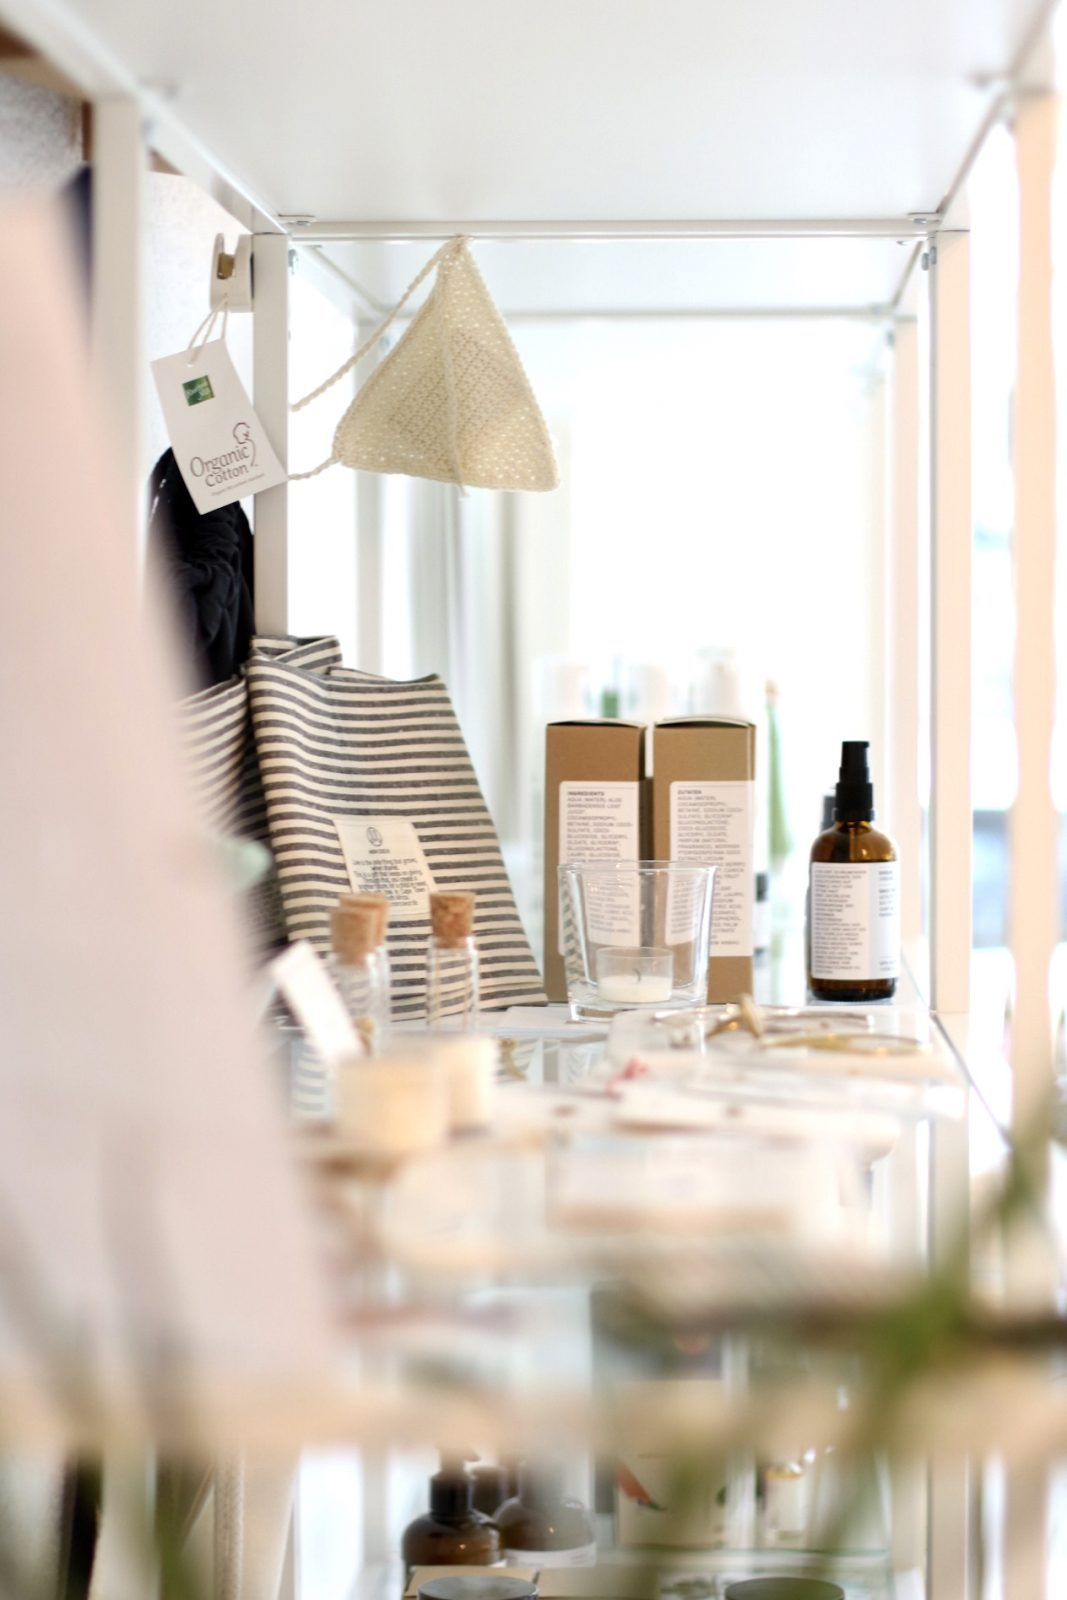 Organic Beauty Store & Spa in Saarbrücken